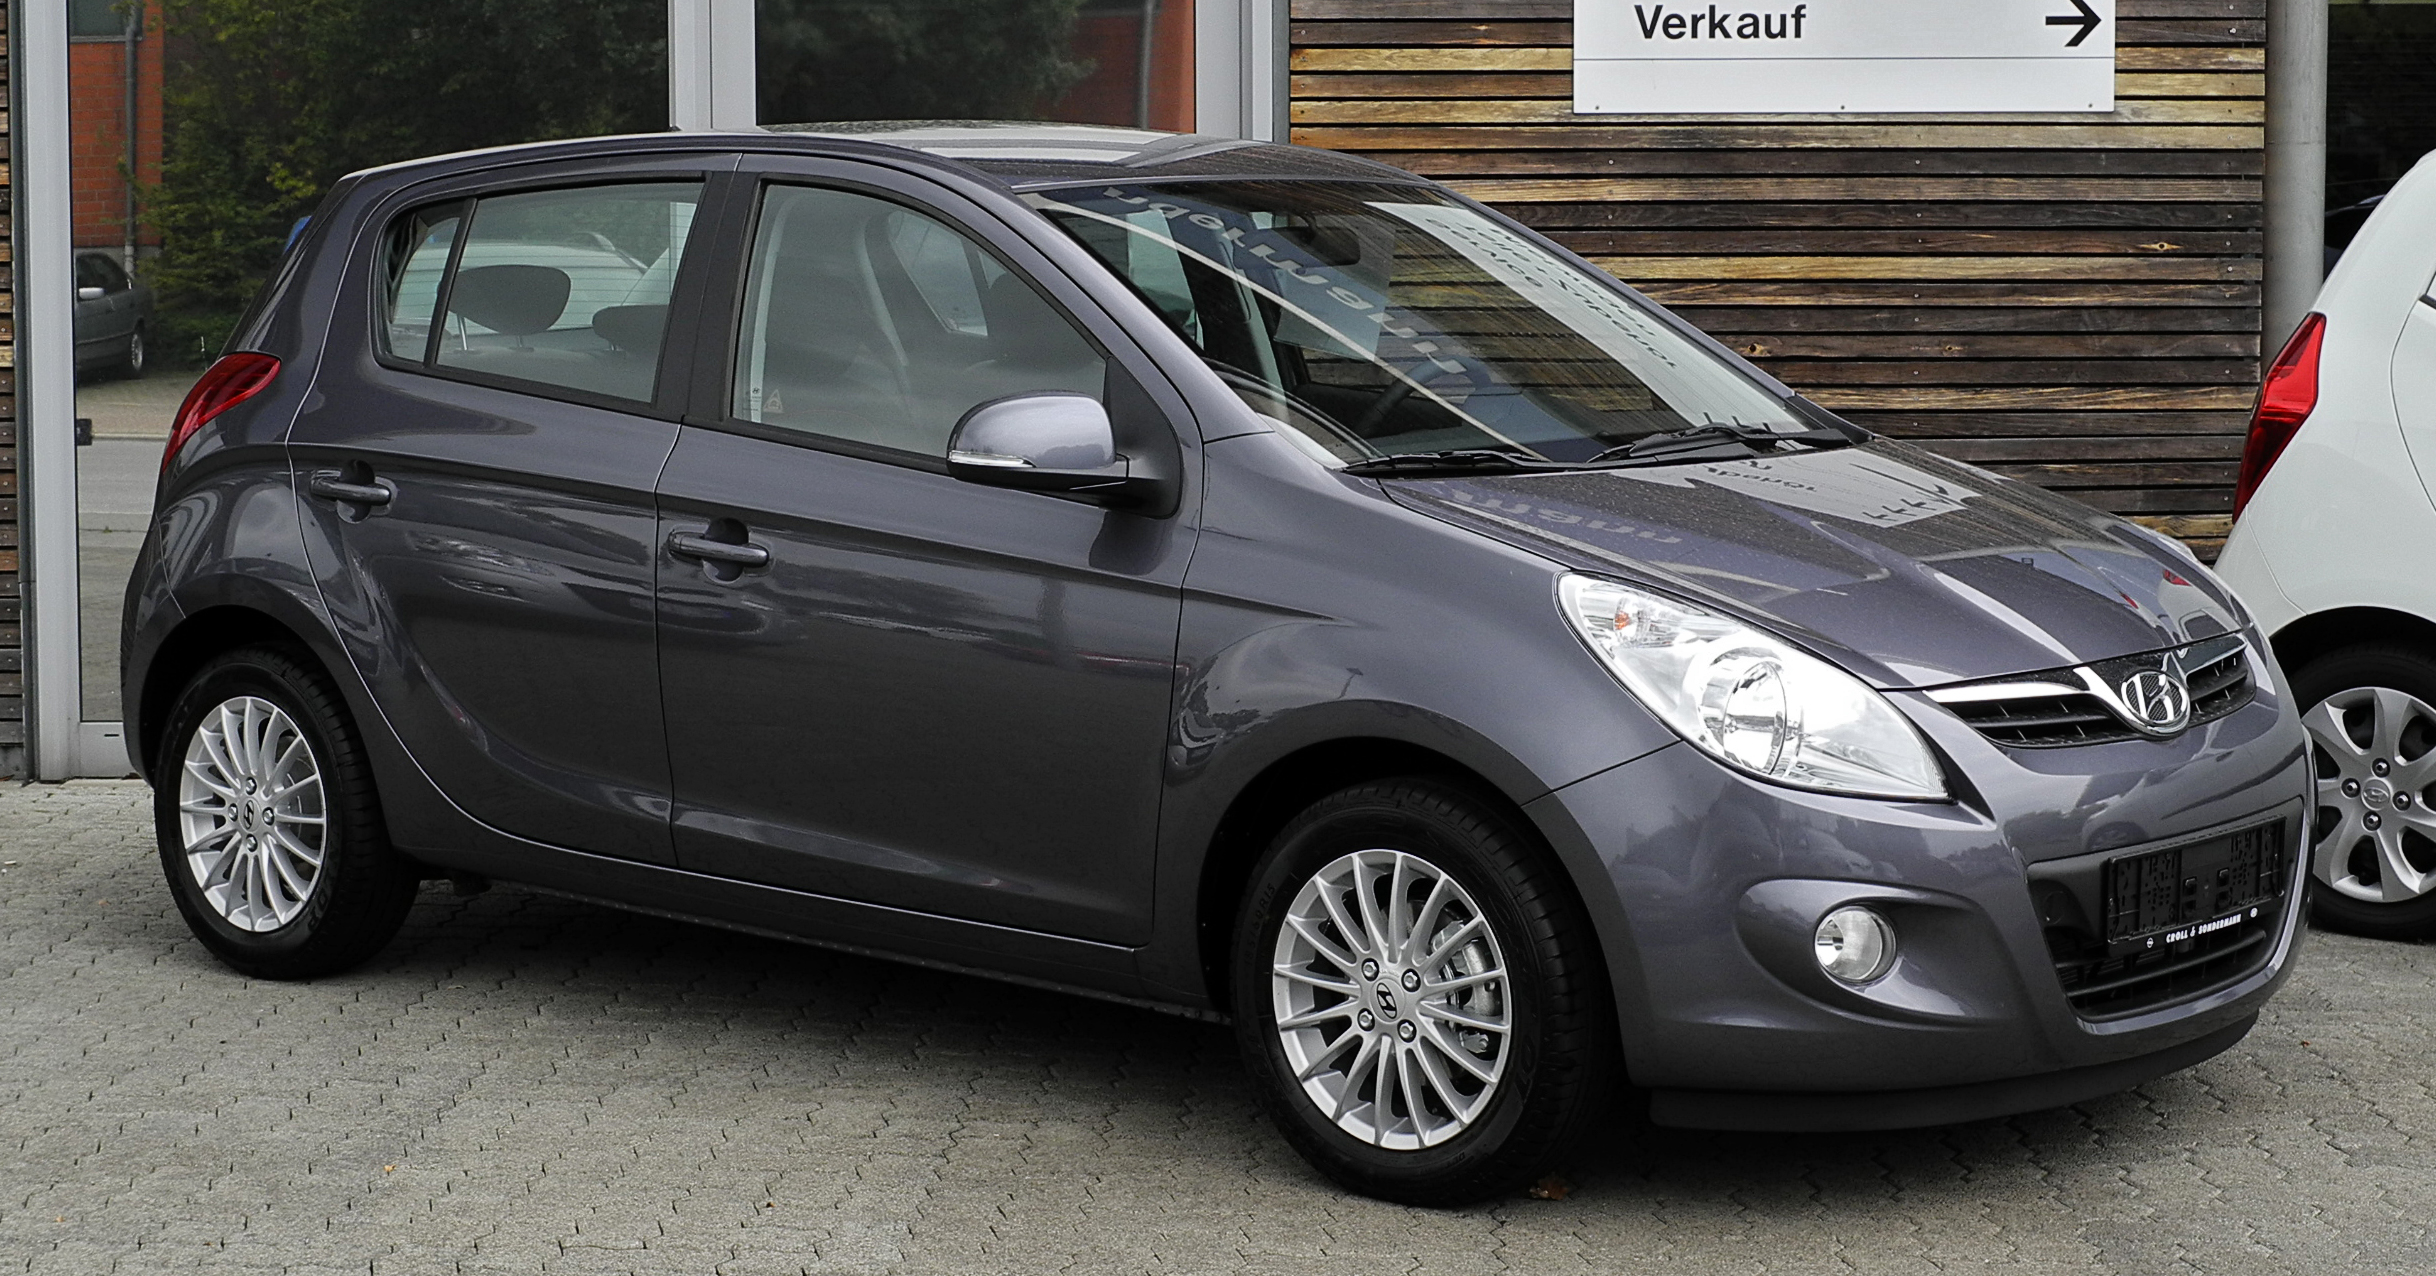 File:Hyundai i20 1.2 Edition20 – Frontansicht (1), 4. September 2011